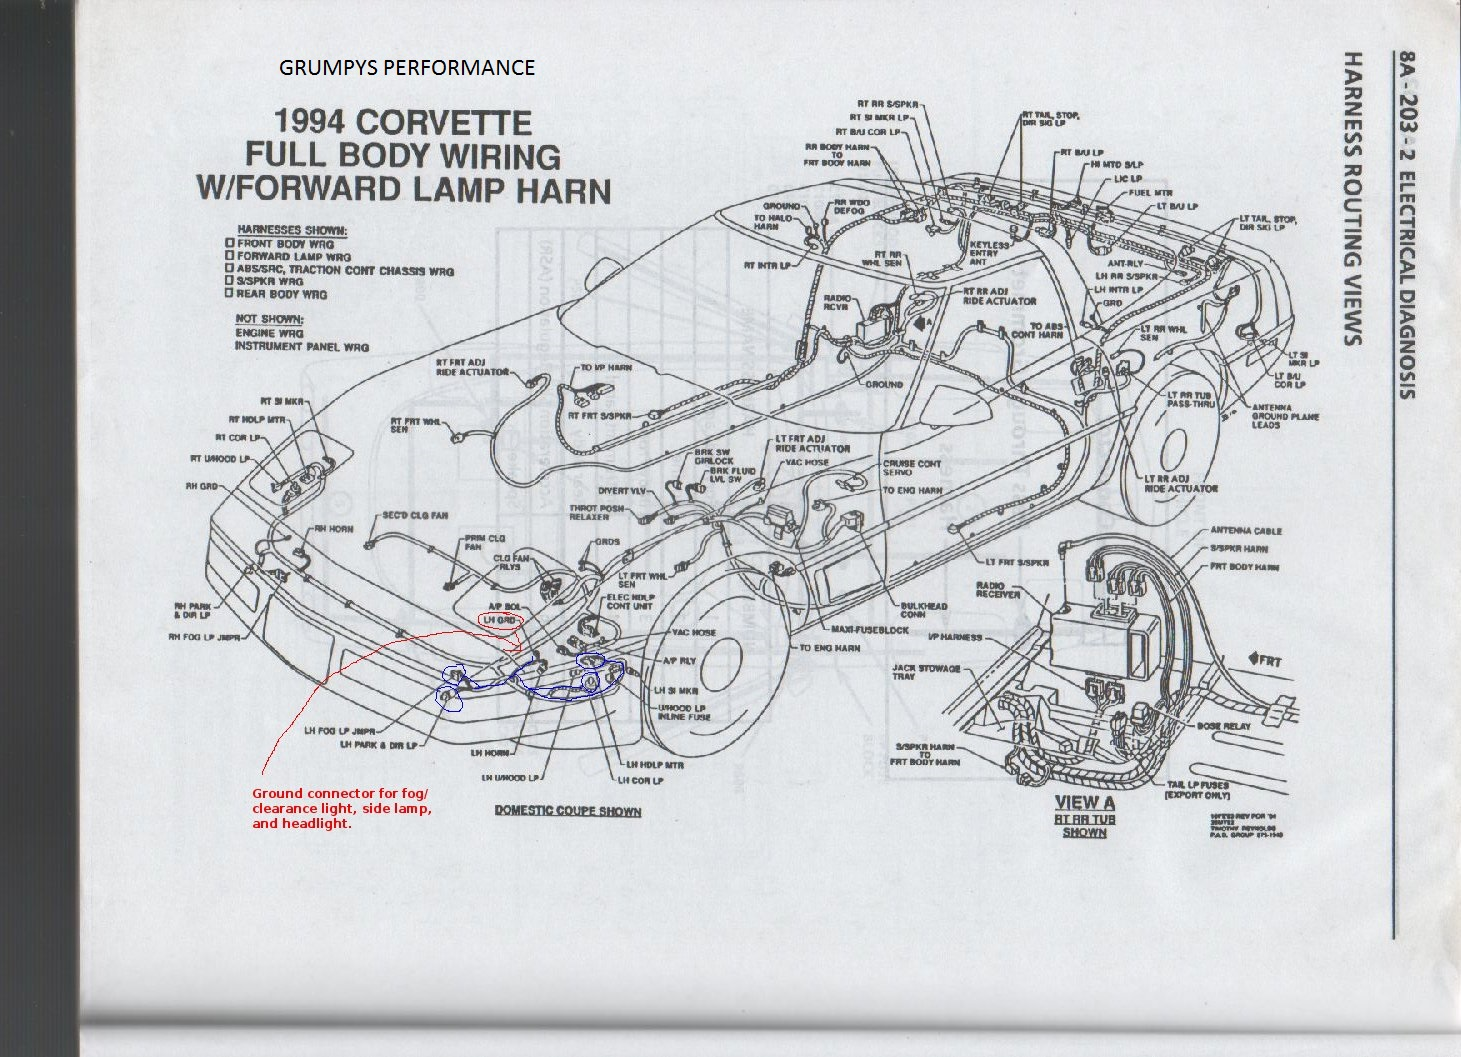 hight resolution of c4 corvette wiring diagram help wiring library 71 corvette wiring diagram 1986 corvette wiring diagram pdf